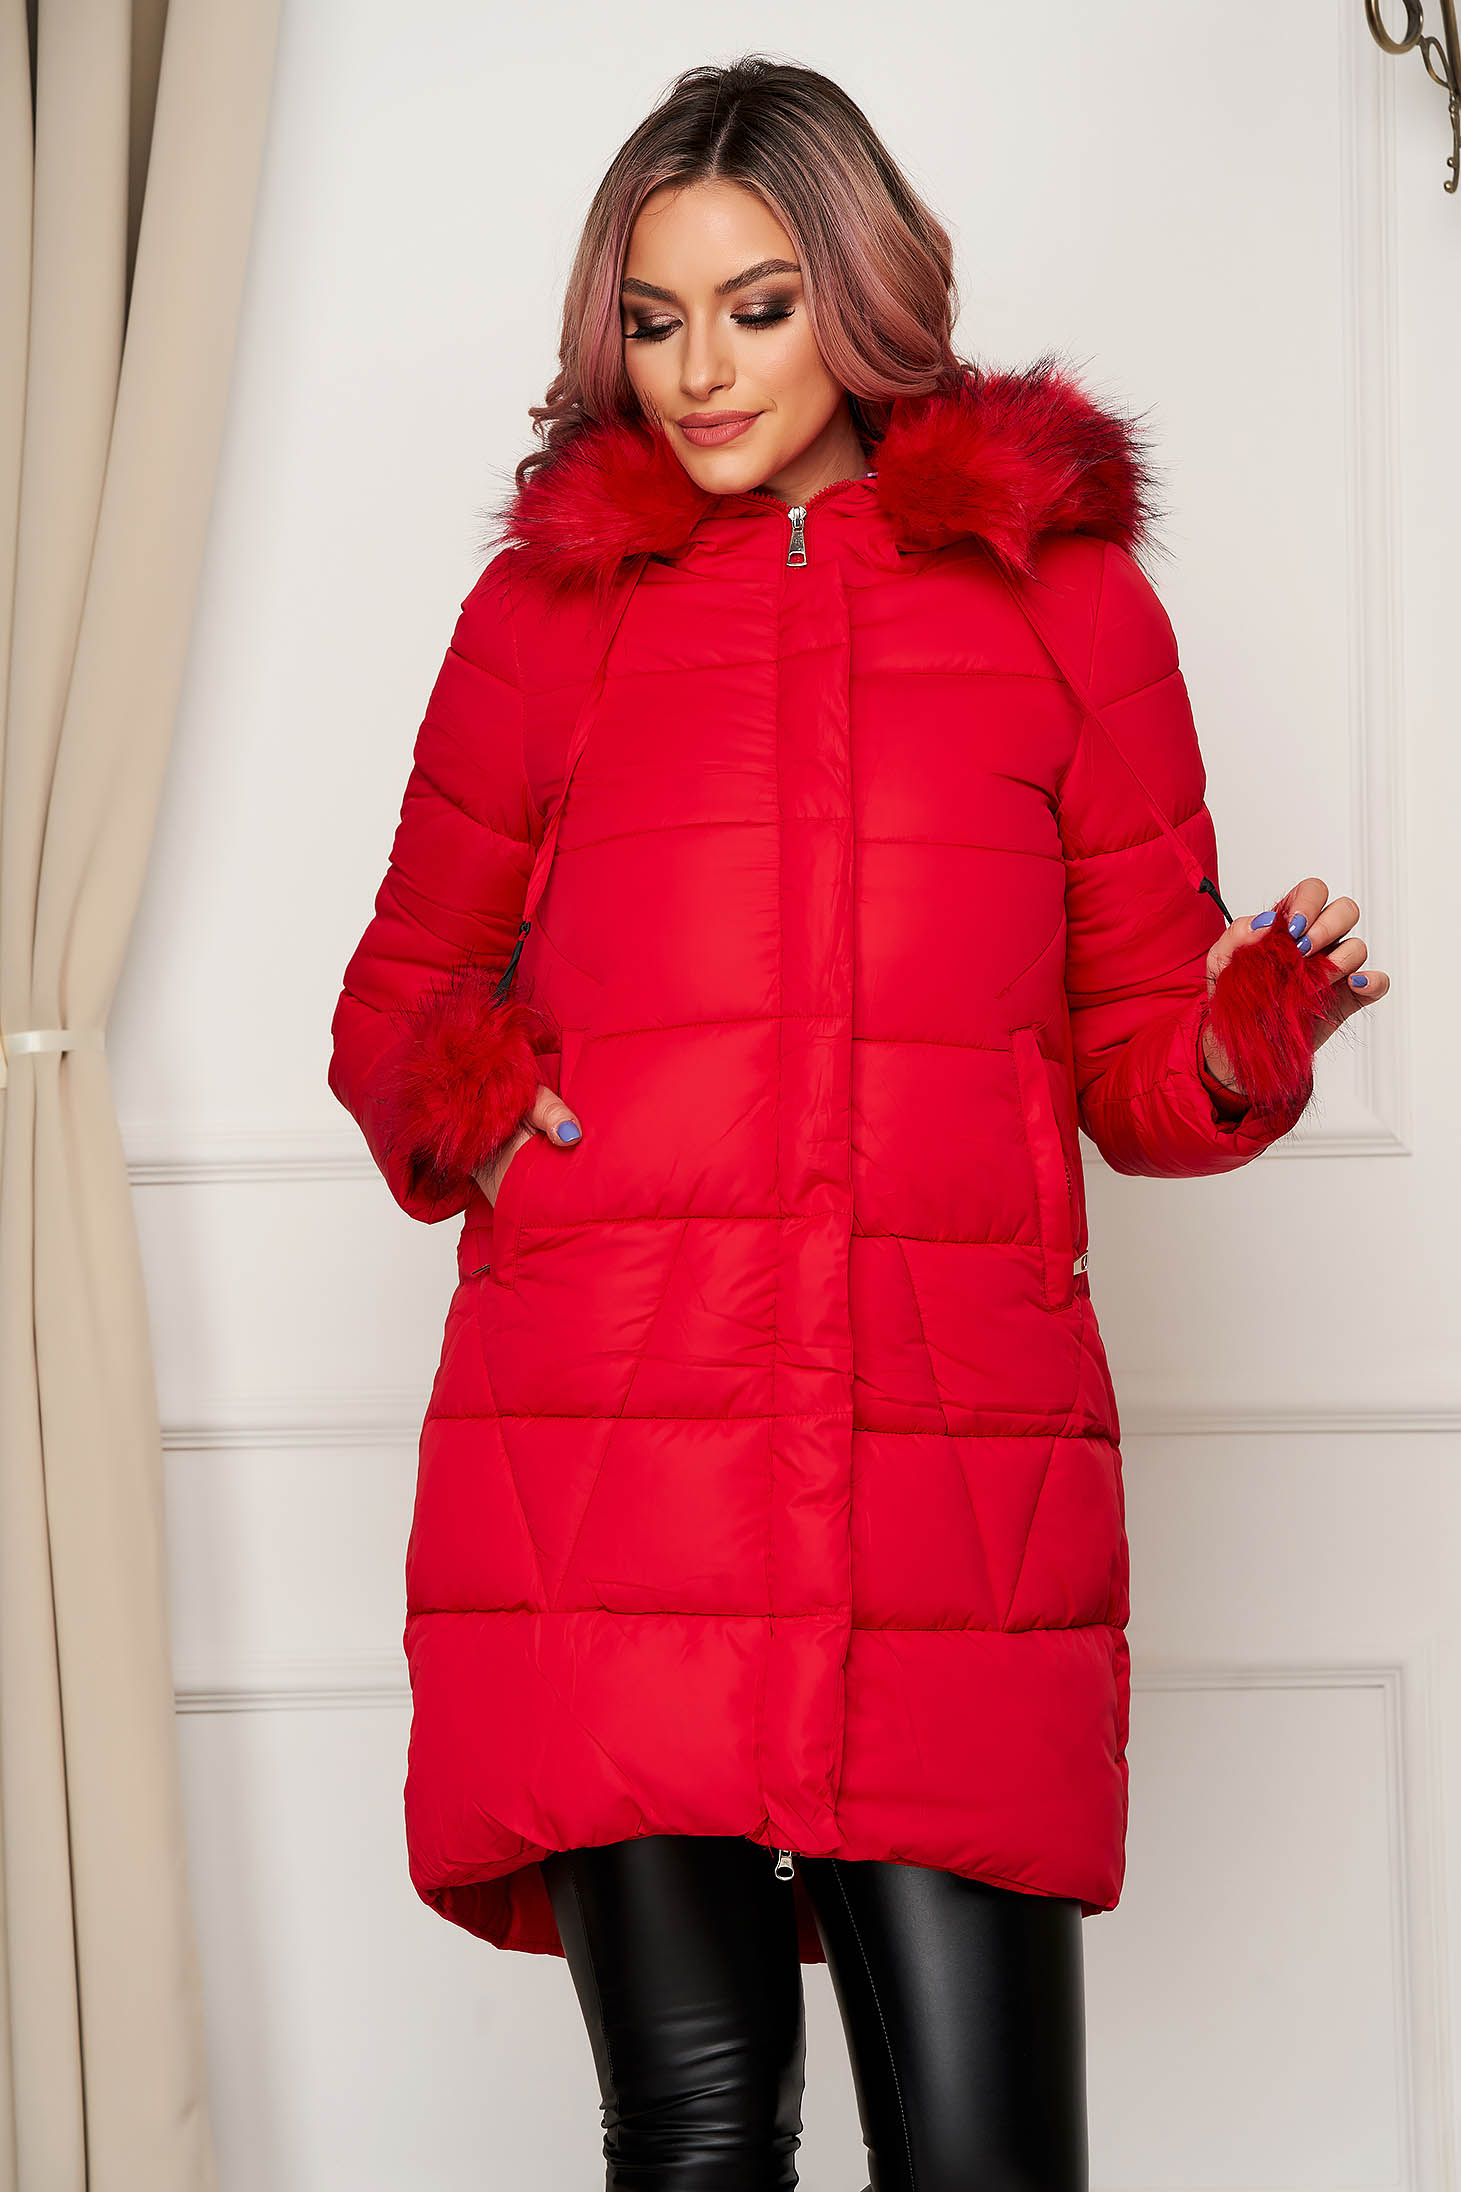 Jacket red from slicker with furry hood with pockets long with tassels